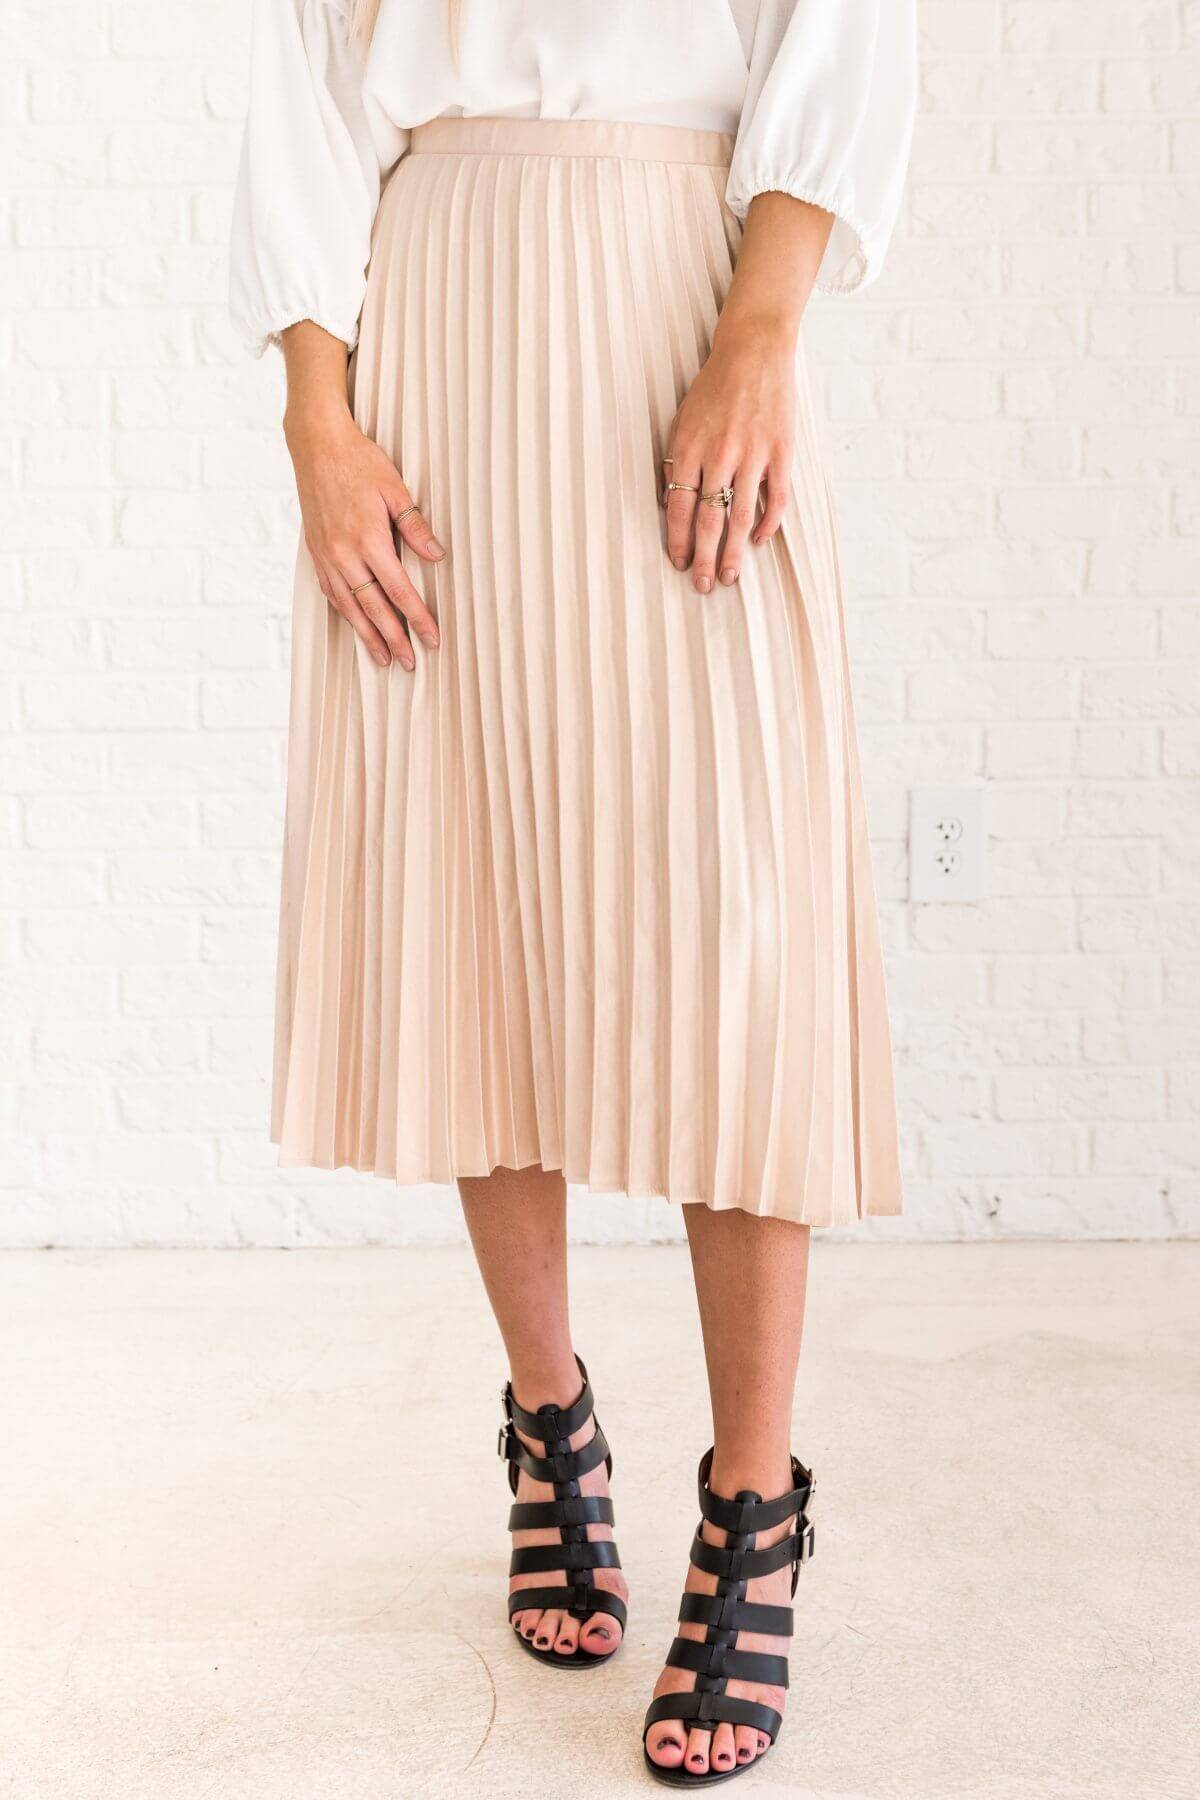 Cream Cute Pleated Midi Skirt with Zipper Back Business Casual for Women